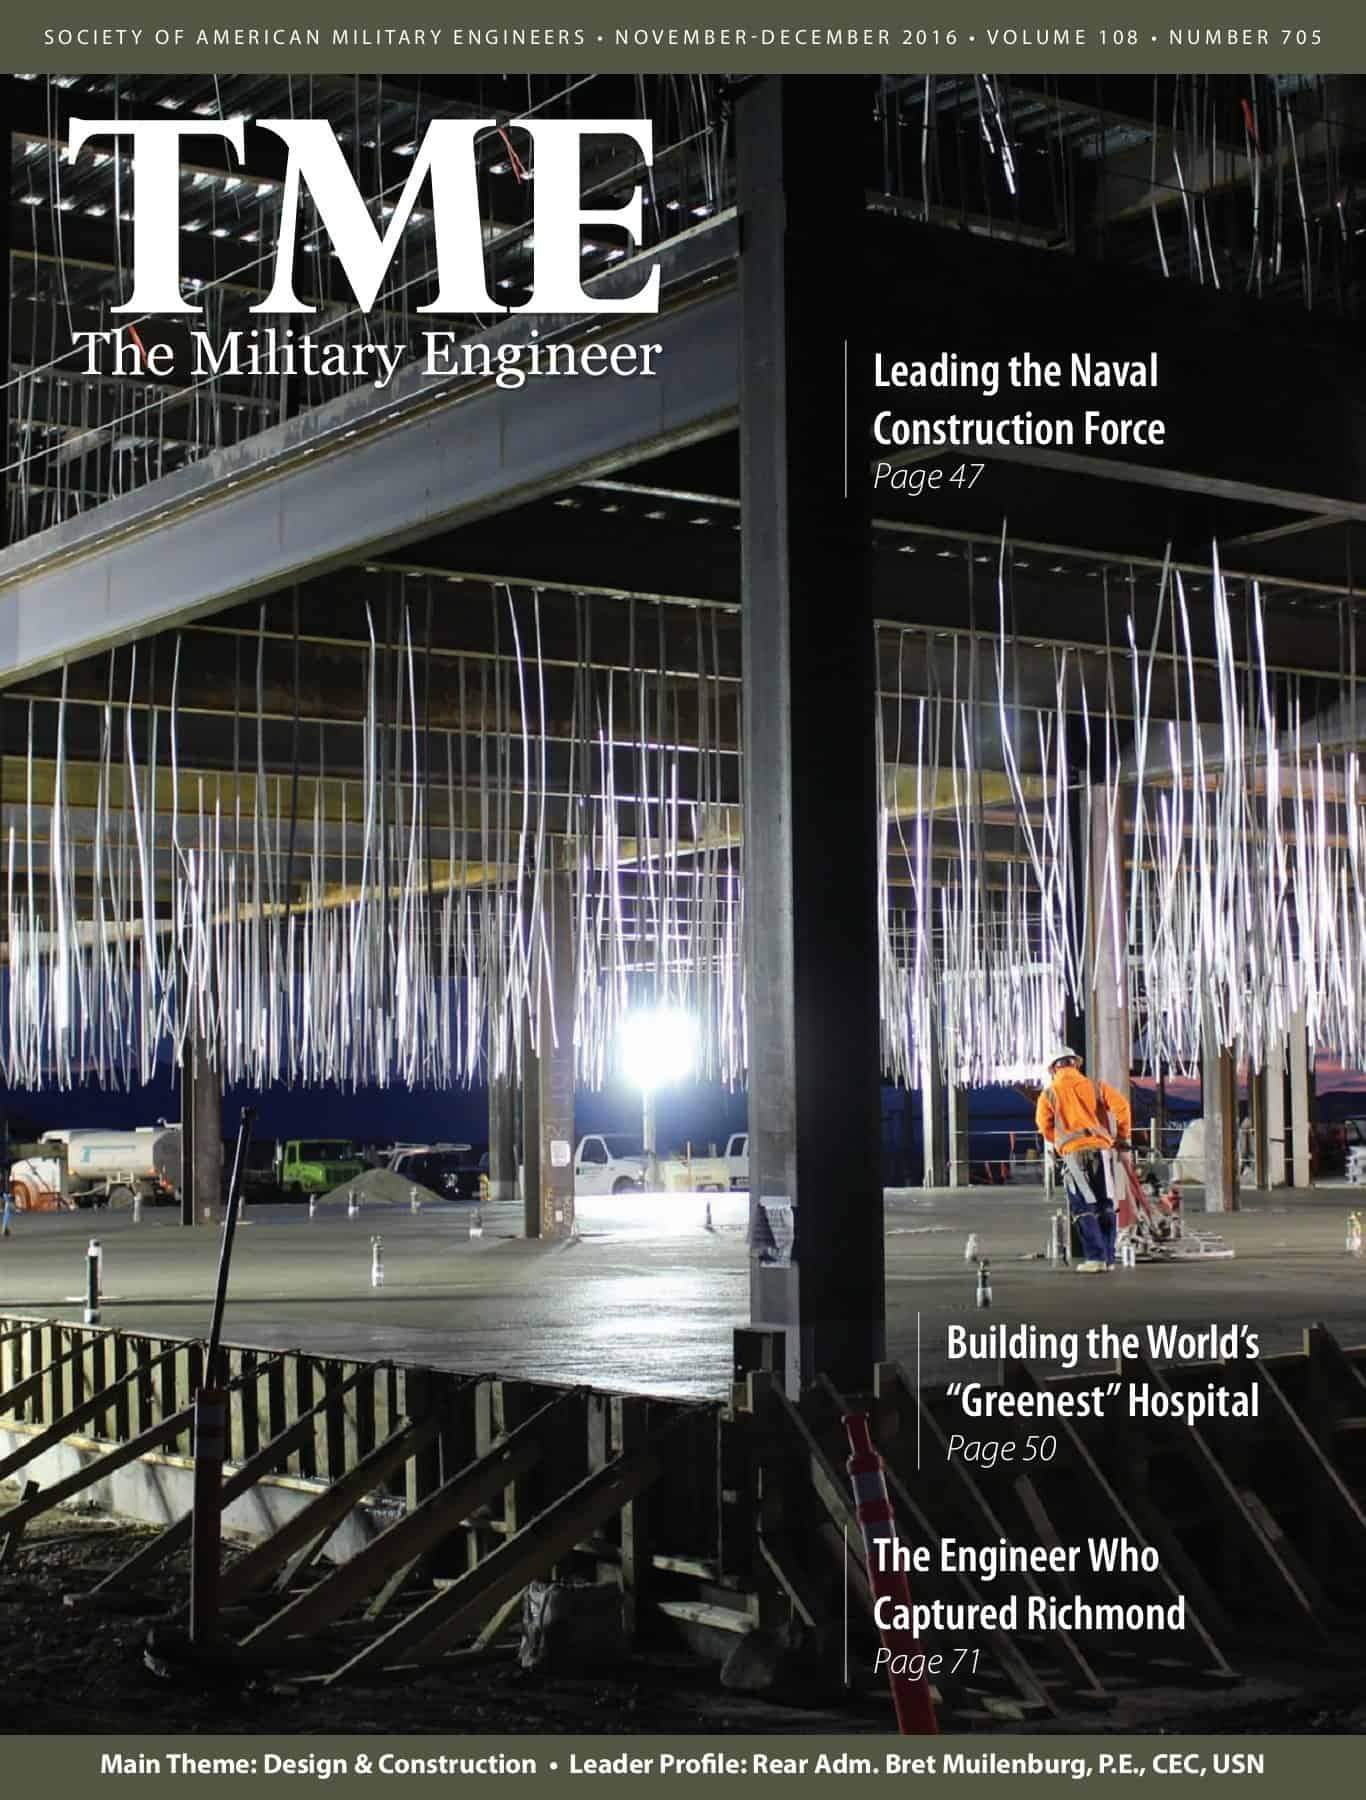 TME Magazine, D2C was featured for their work on Colorado Air National Guard Hangar 909